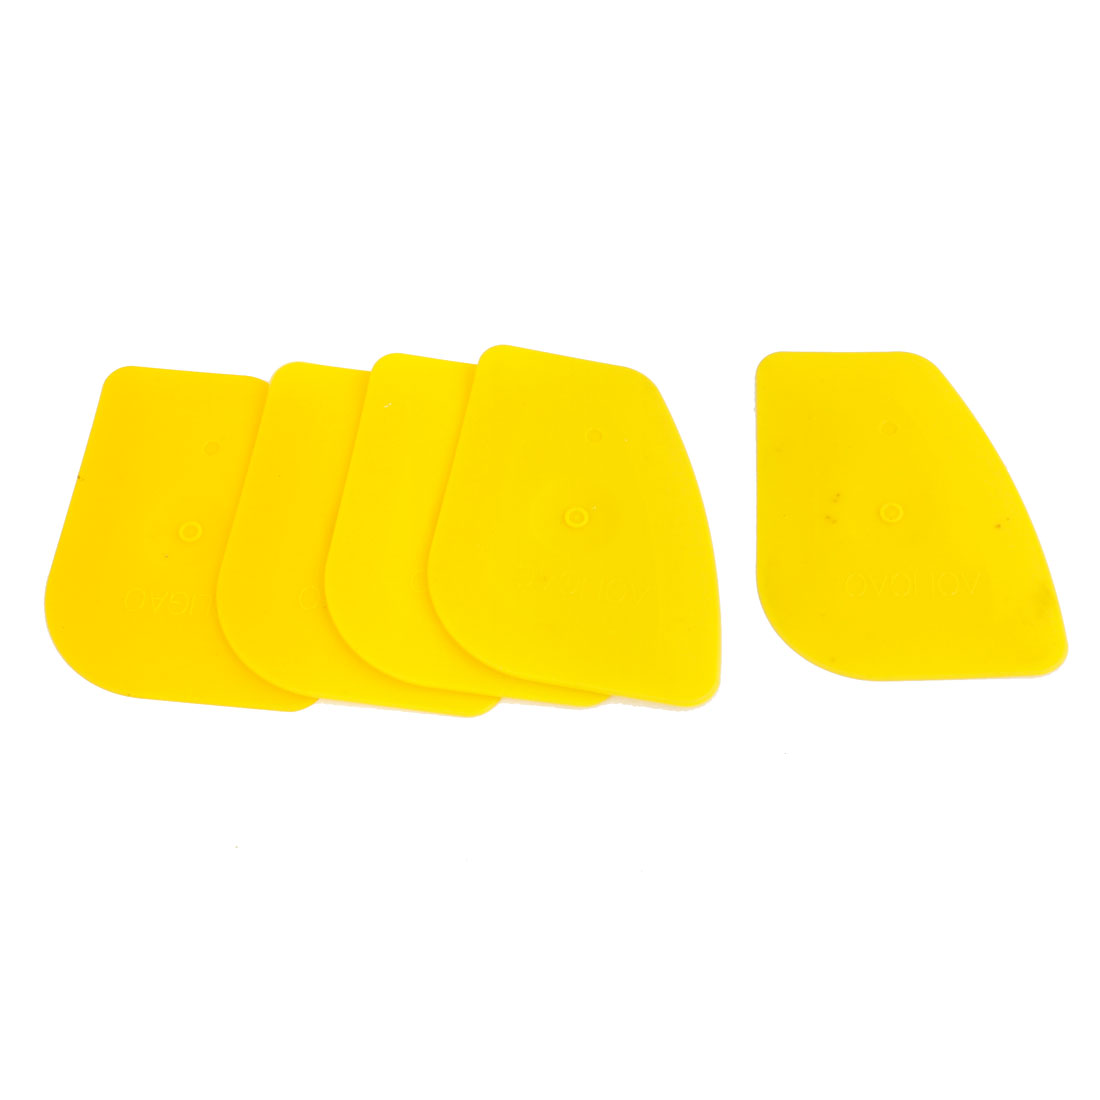 5 Pcs Yellow Plastic Window Scraper Blade Cleaner for Car Auto